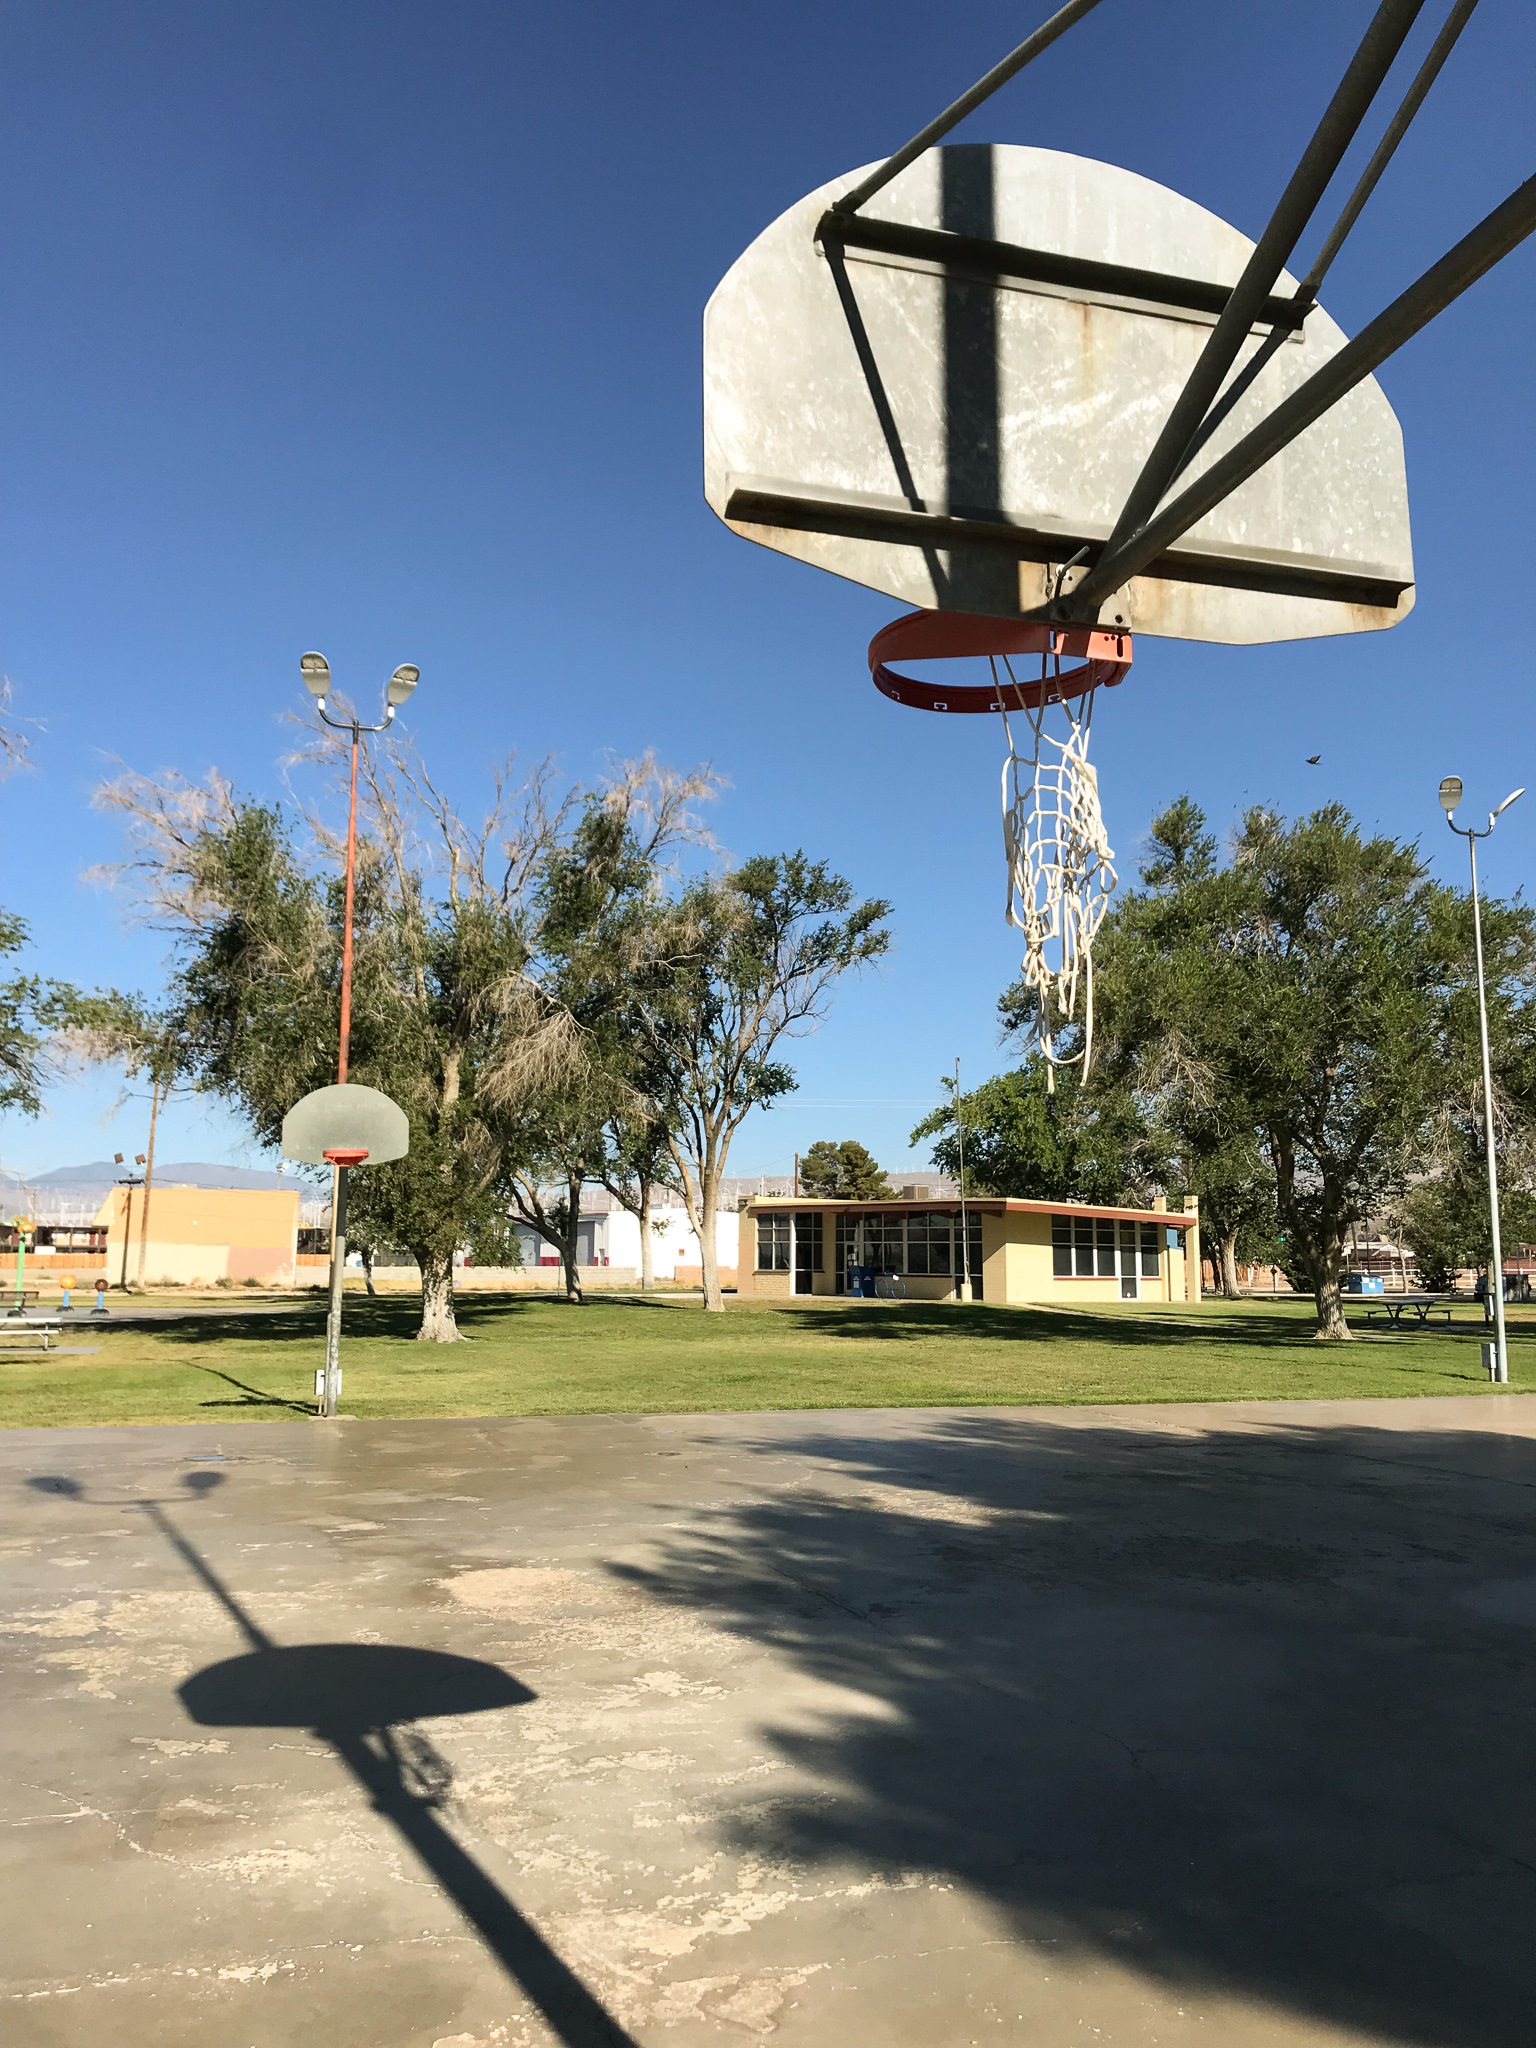 Small town basketball courts